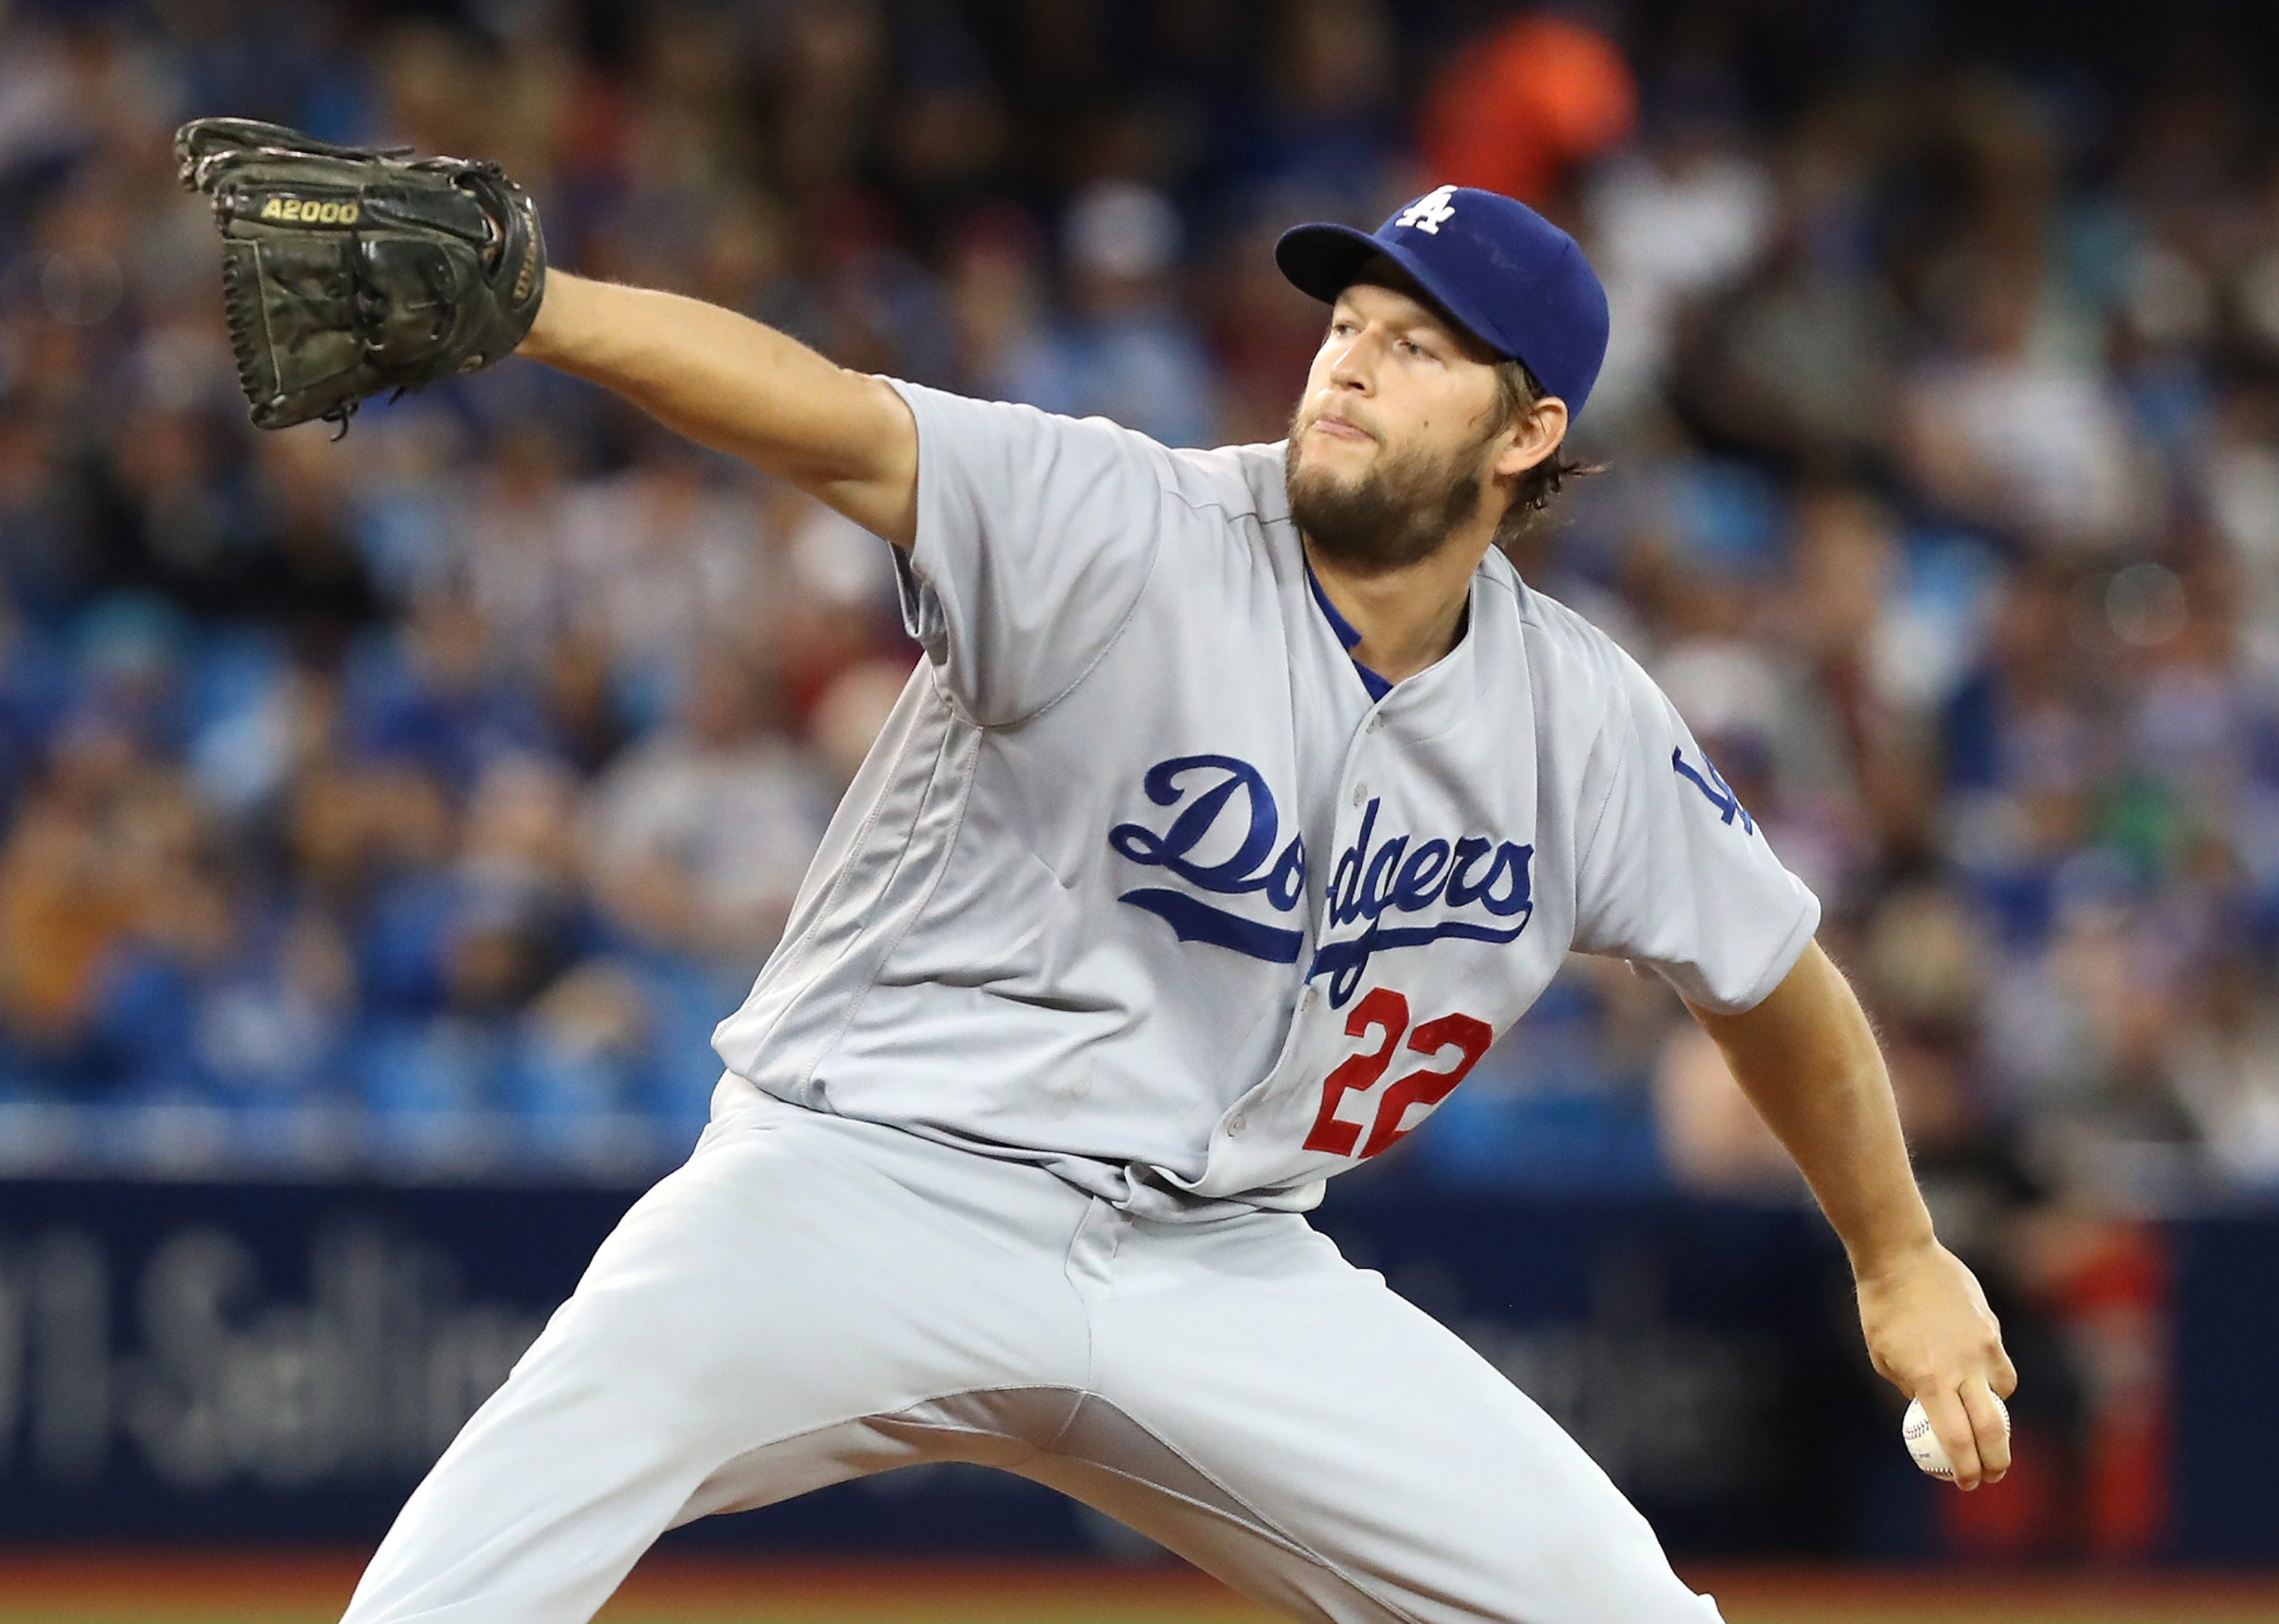 Los Angeles Dodgers starting pitcher Clayton Kershaw throws against the Toronto Blue Jays  during the first inning of a baseball game in Toronto on Saturday, May 7, 2016. (Fred Thornhill/The Canadian Press via AP) MANDATORY CREDIT